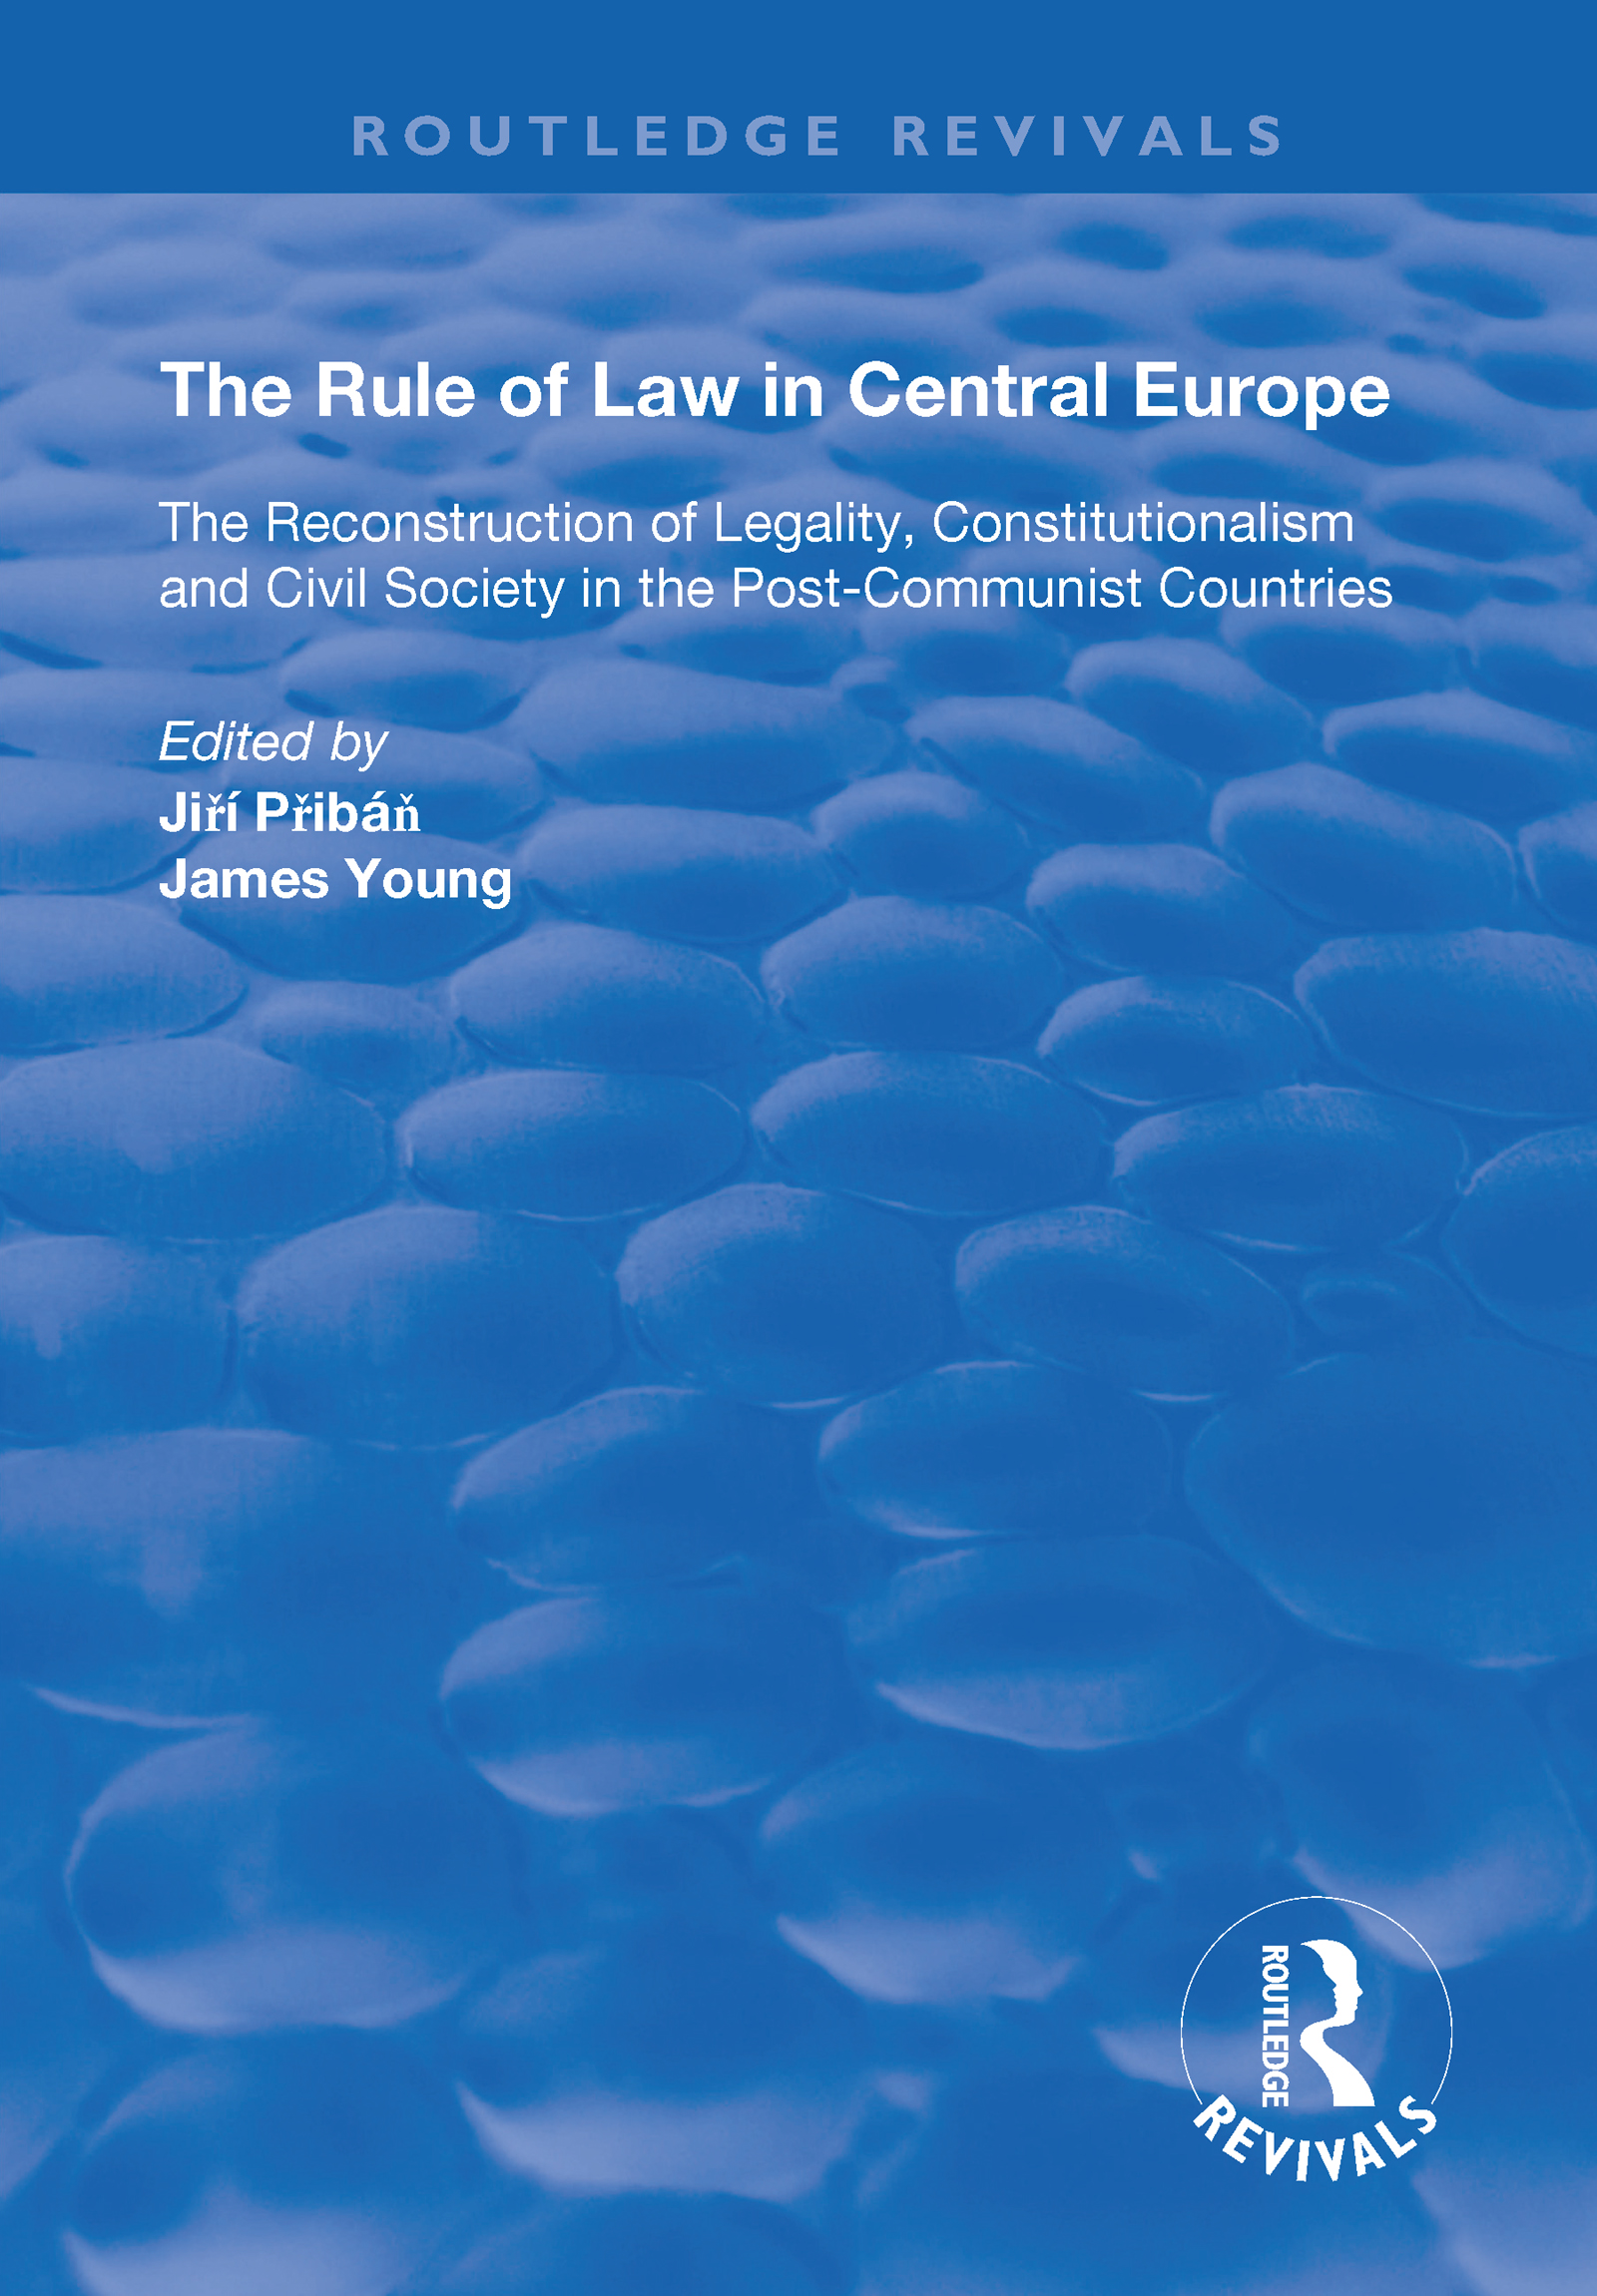 The Rule of Law in Central Europe